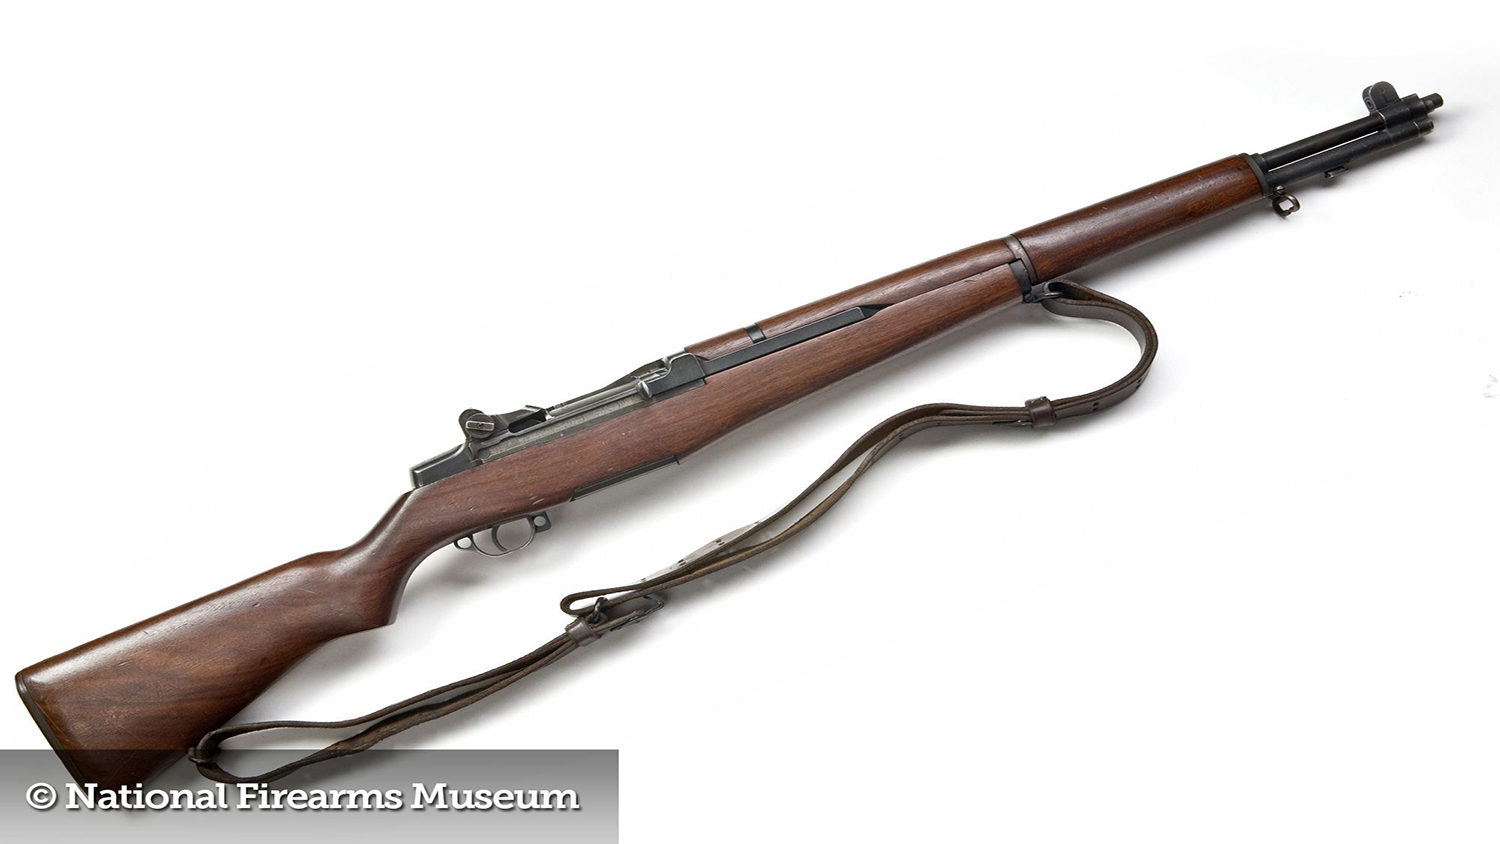 Gun of the Day: M1 Garand From Hollywood